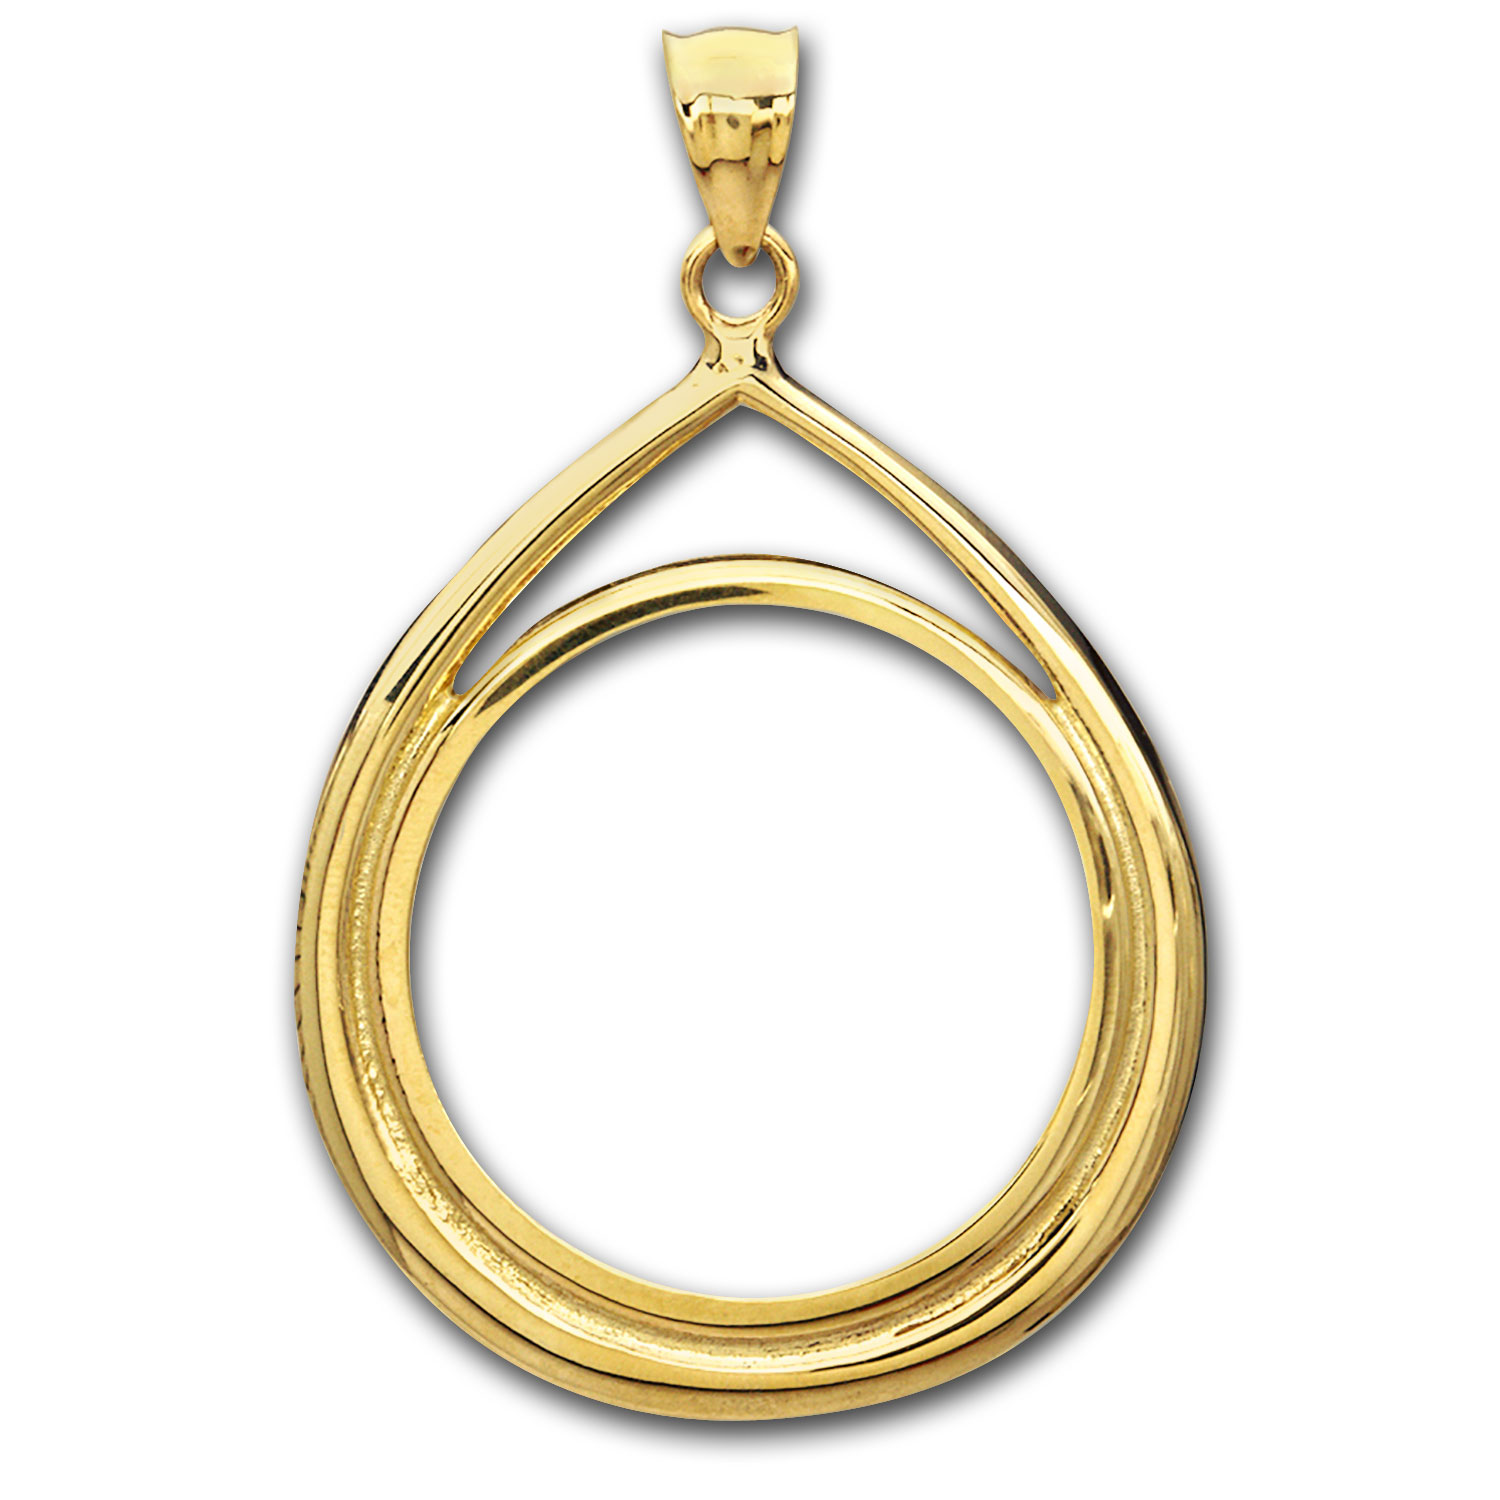 14K Gold Prong Tear Drop Coin Bezel - 16.5 mm